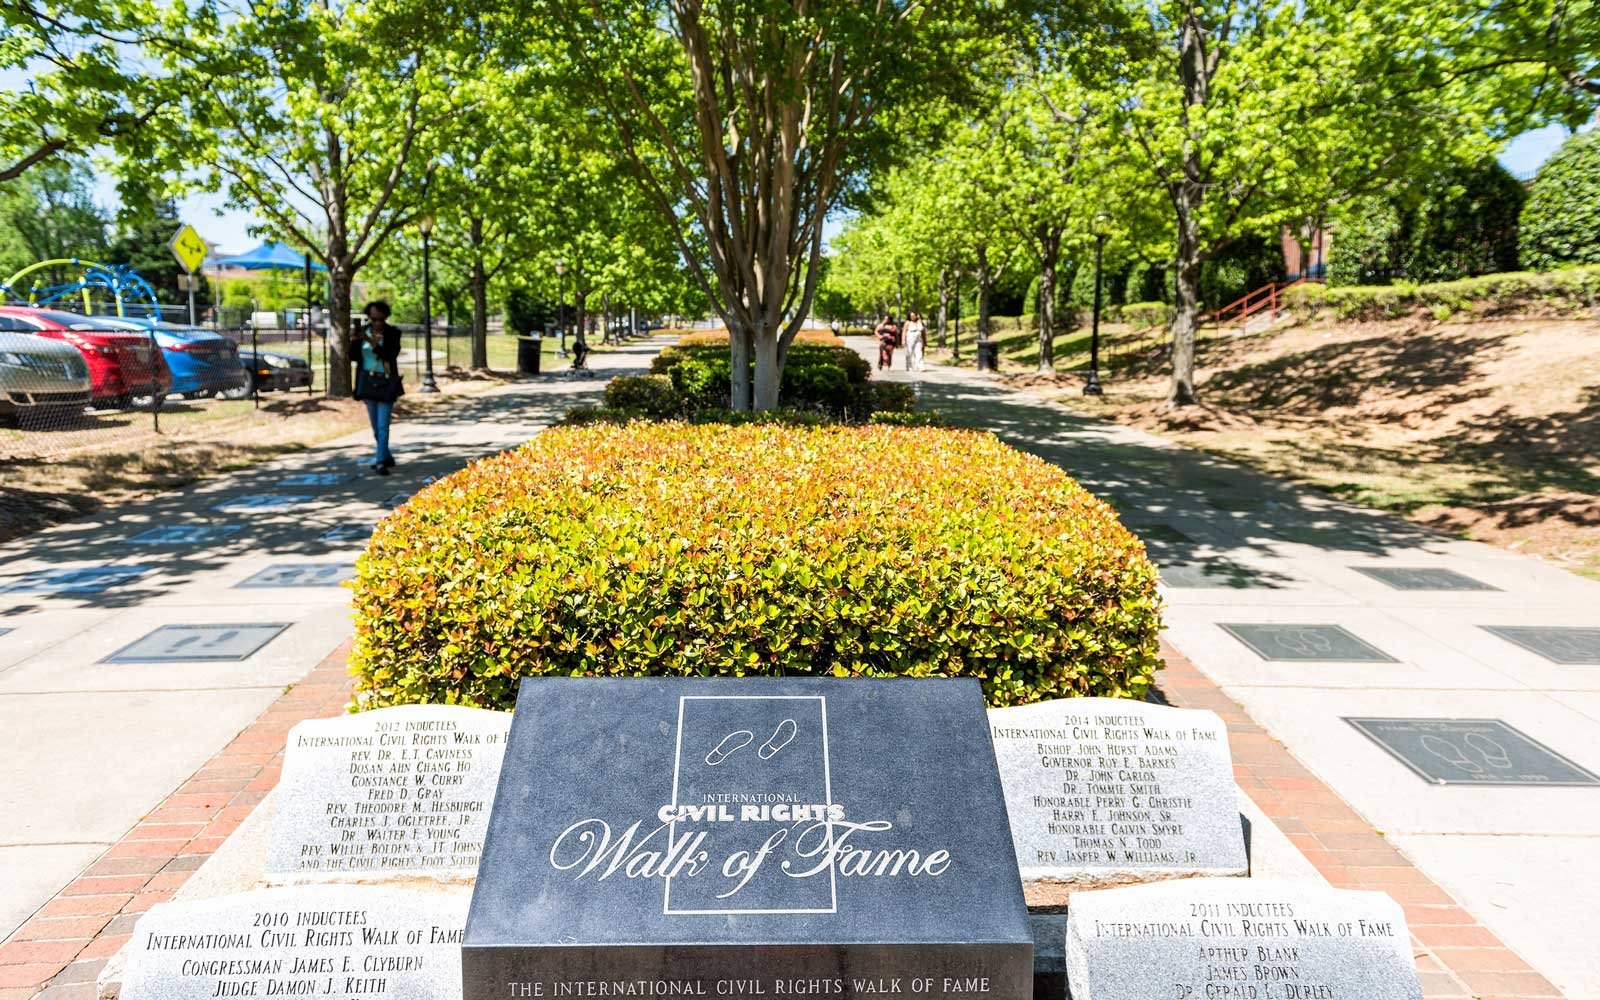 Martin Luther King, Jr. National Park in Atlanta, Georgia